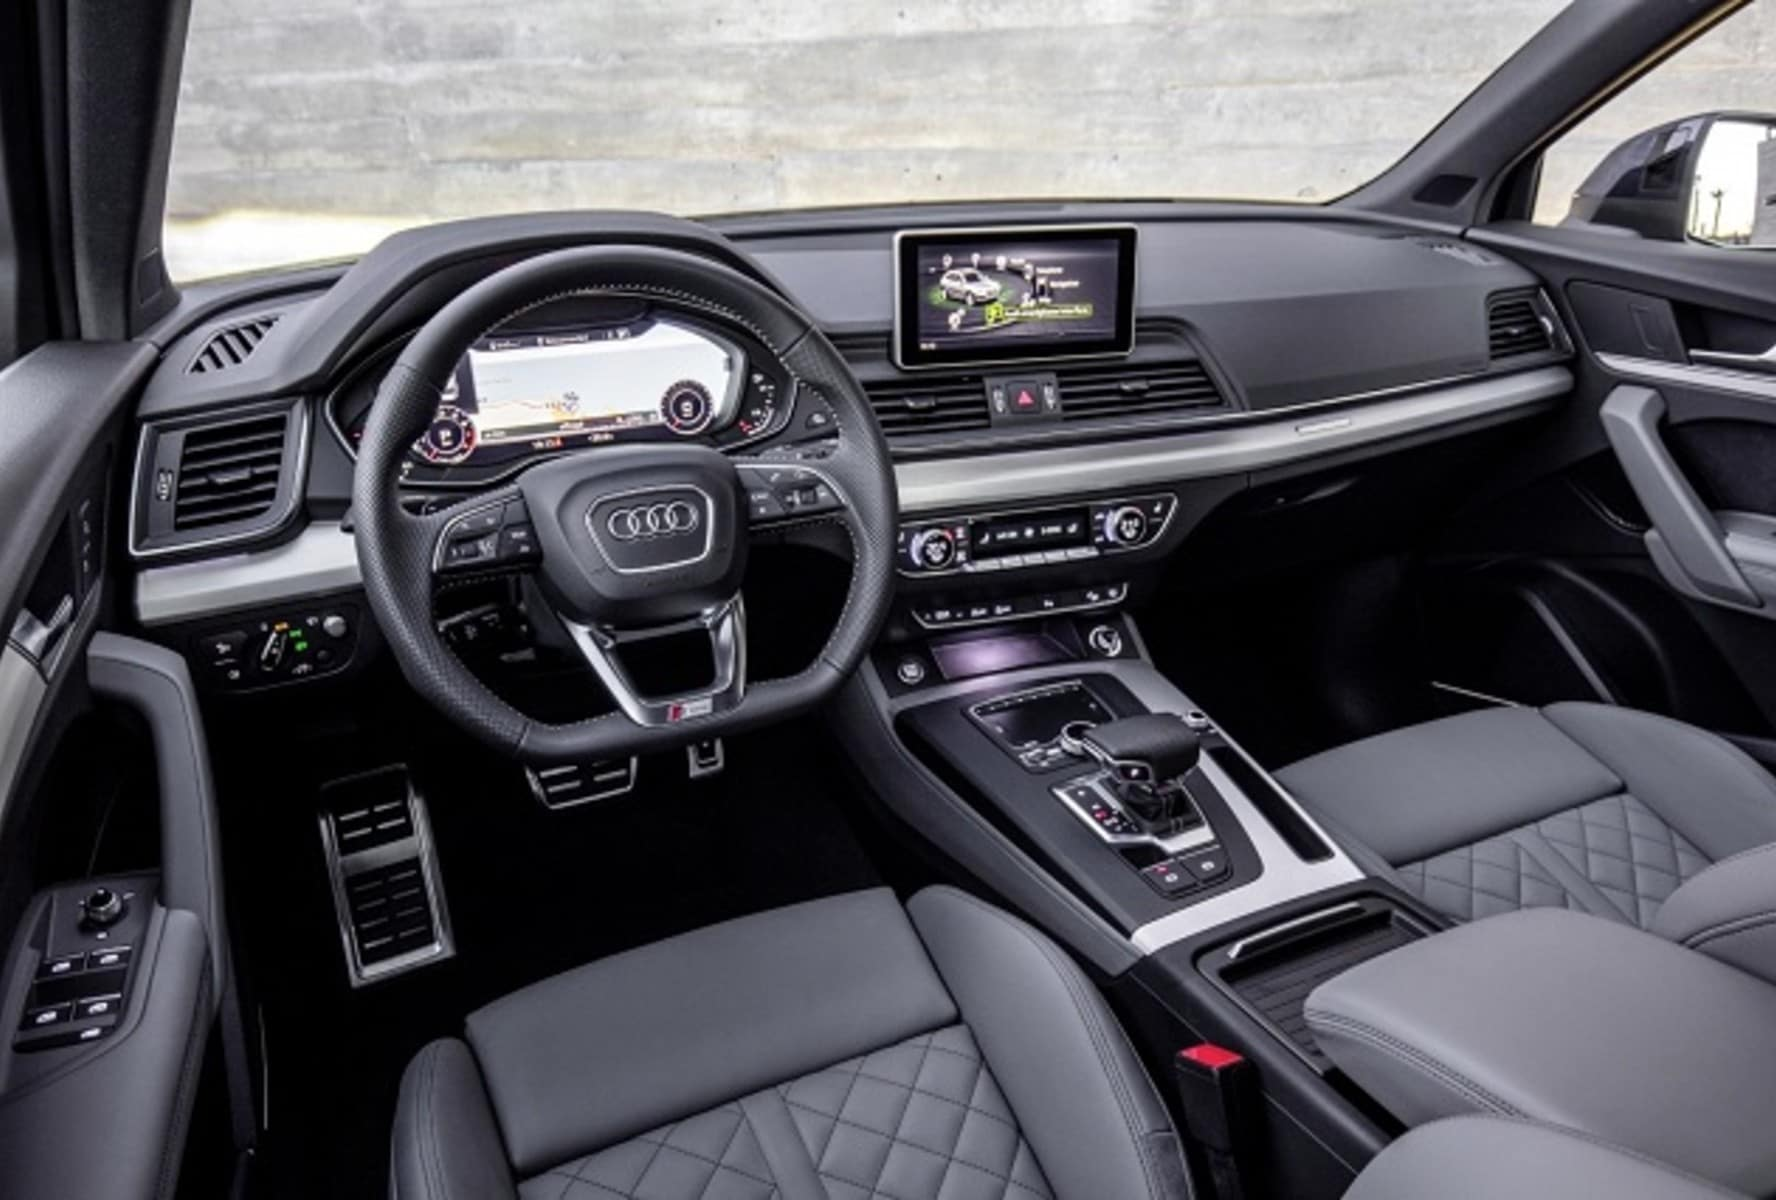 2019 Audi SQ5 Dashboard Interior View